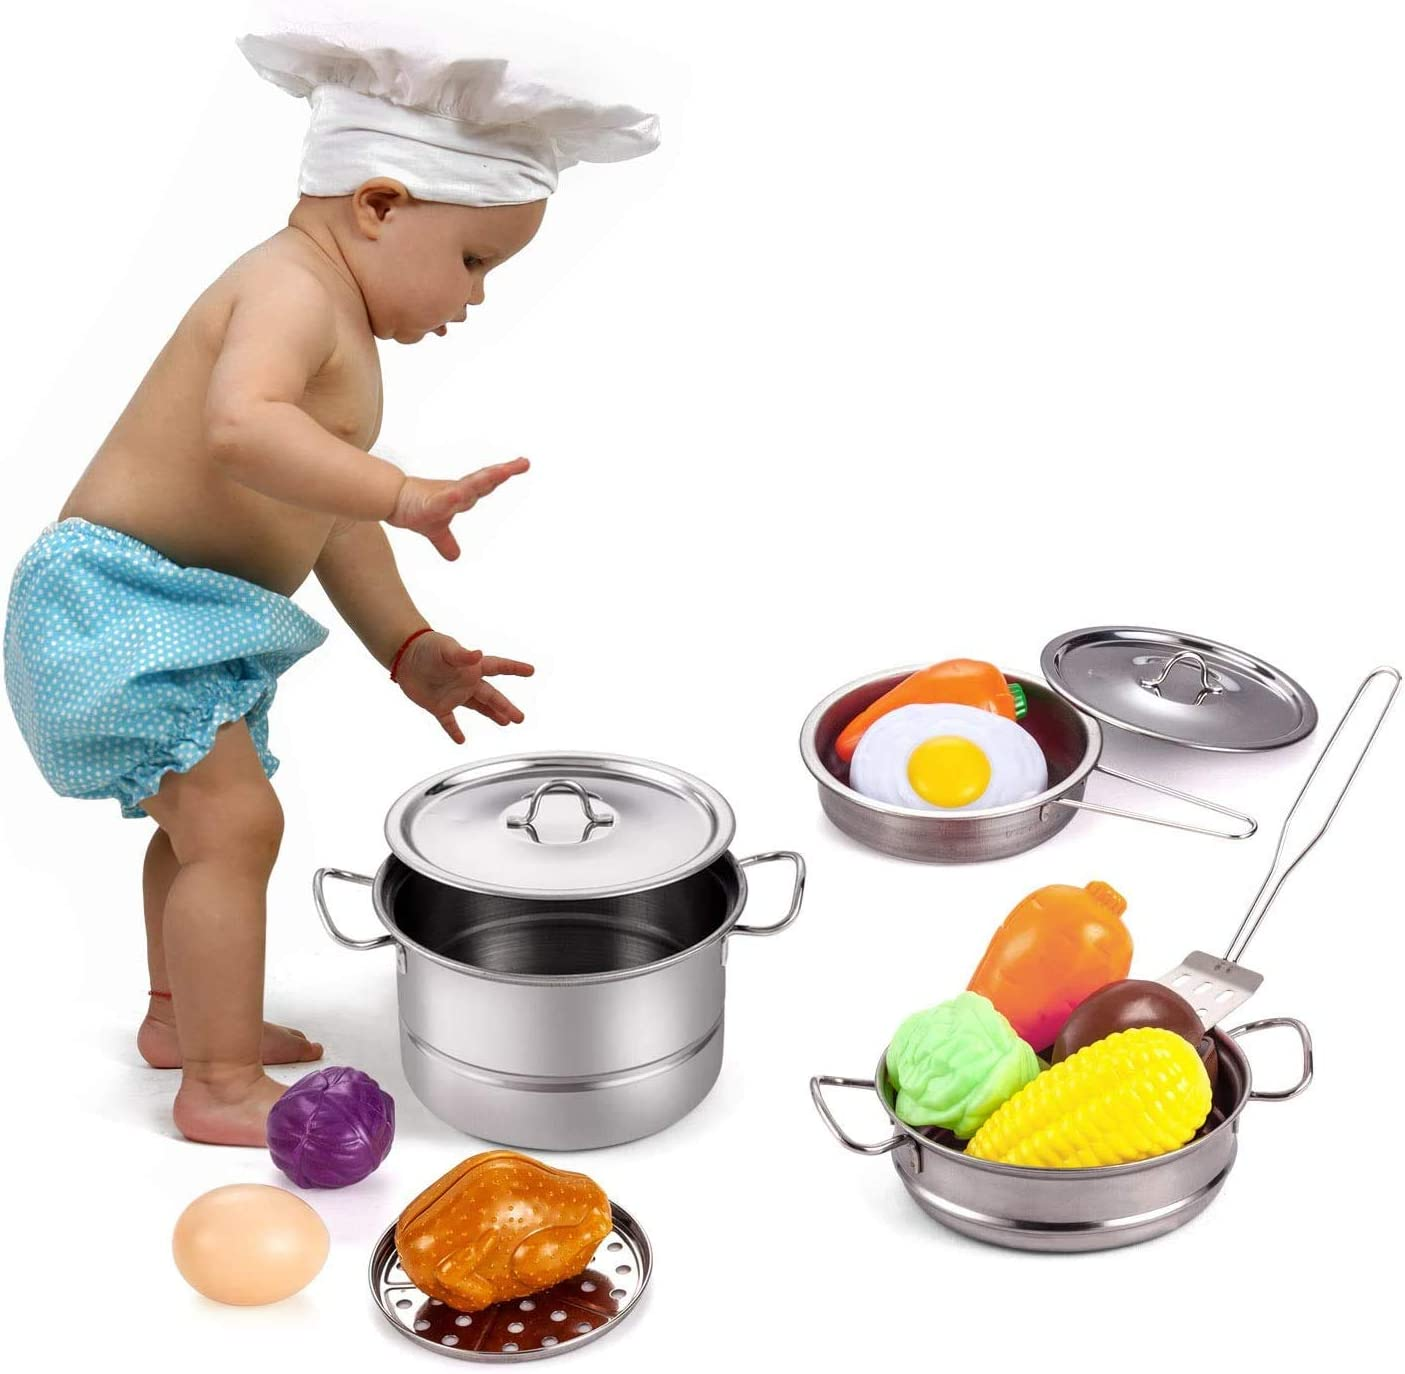 Boys Cutting Vegetables for Kids Baking Glove /& Rag Girls Toddlers Tuko Kitchen Pretend Play Toys with Stainless Steel Cookware Pots and Pans Set Cooking Utensils